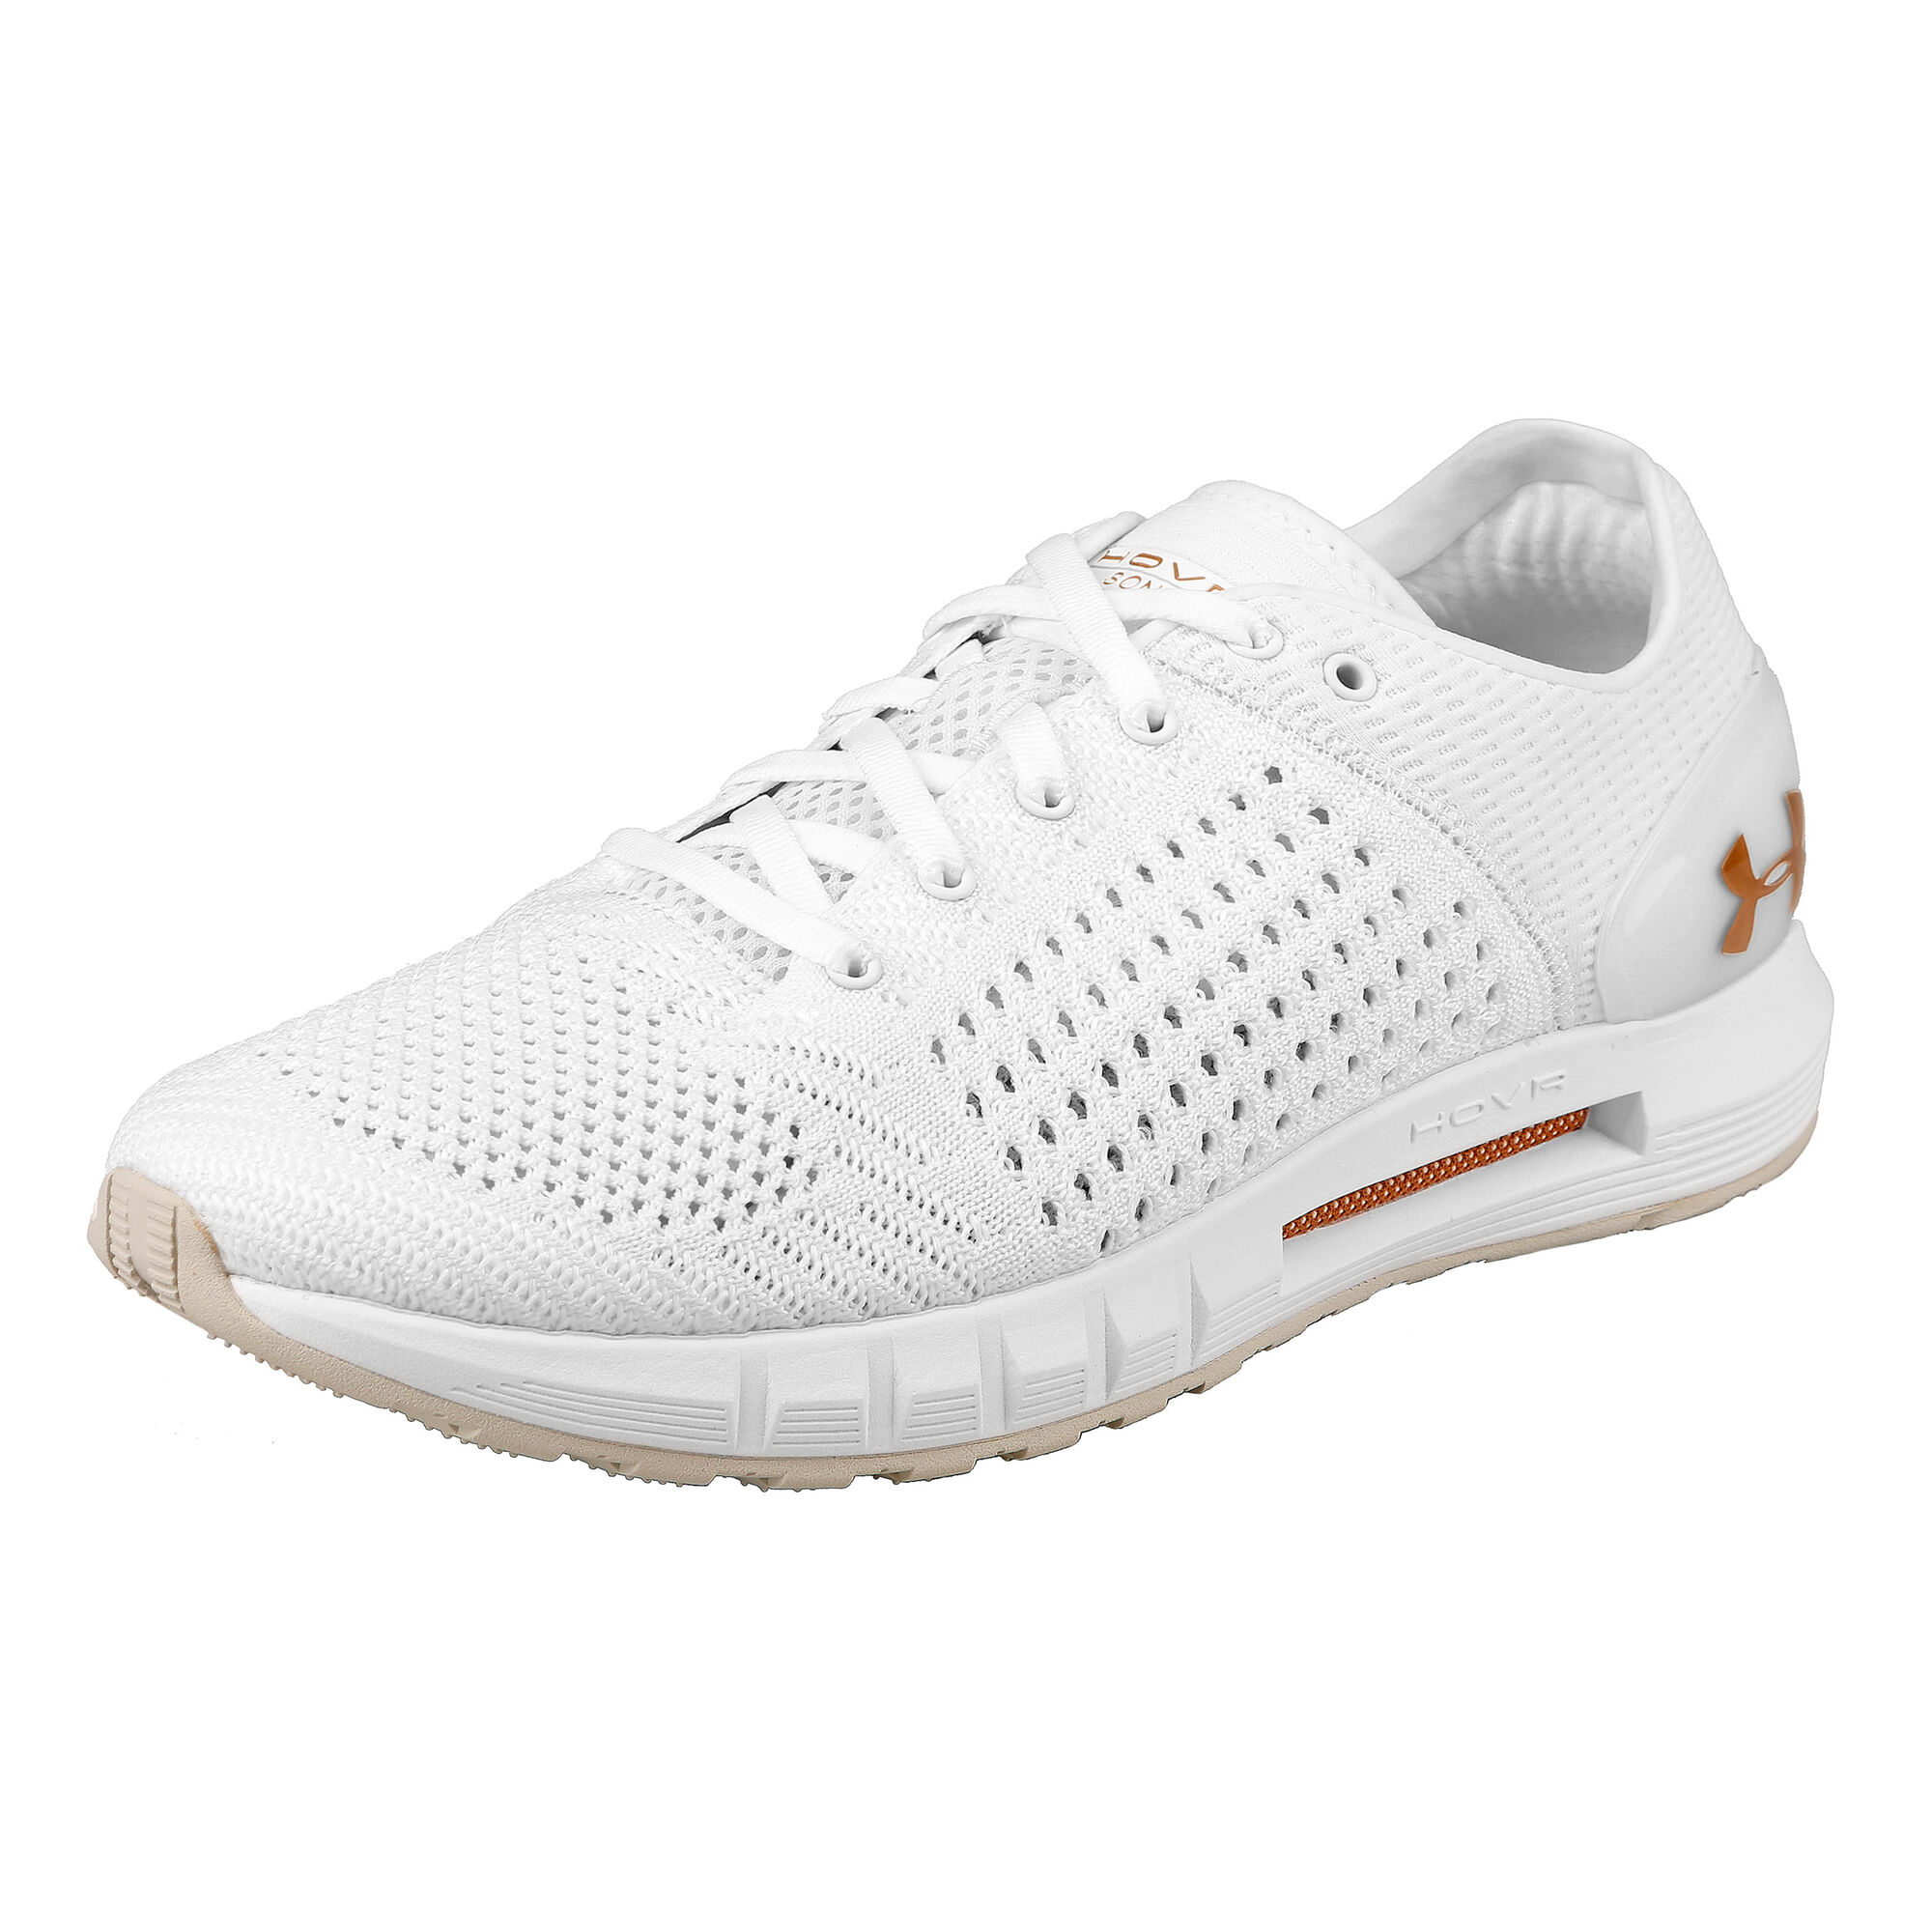 bf8d35dc9d Under Armour · Under Armour · Under Armour · Under Armour. HOVR Sonic NC ...